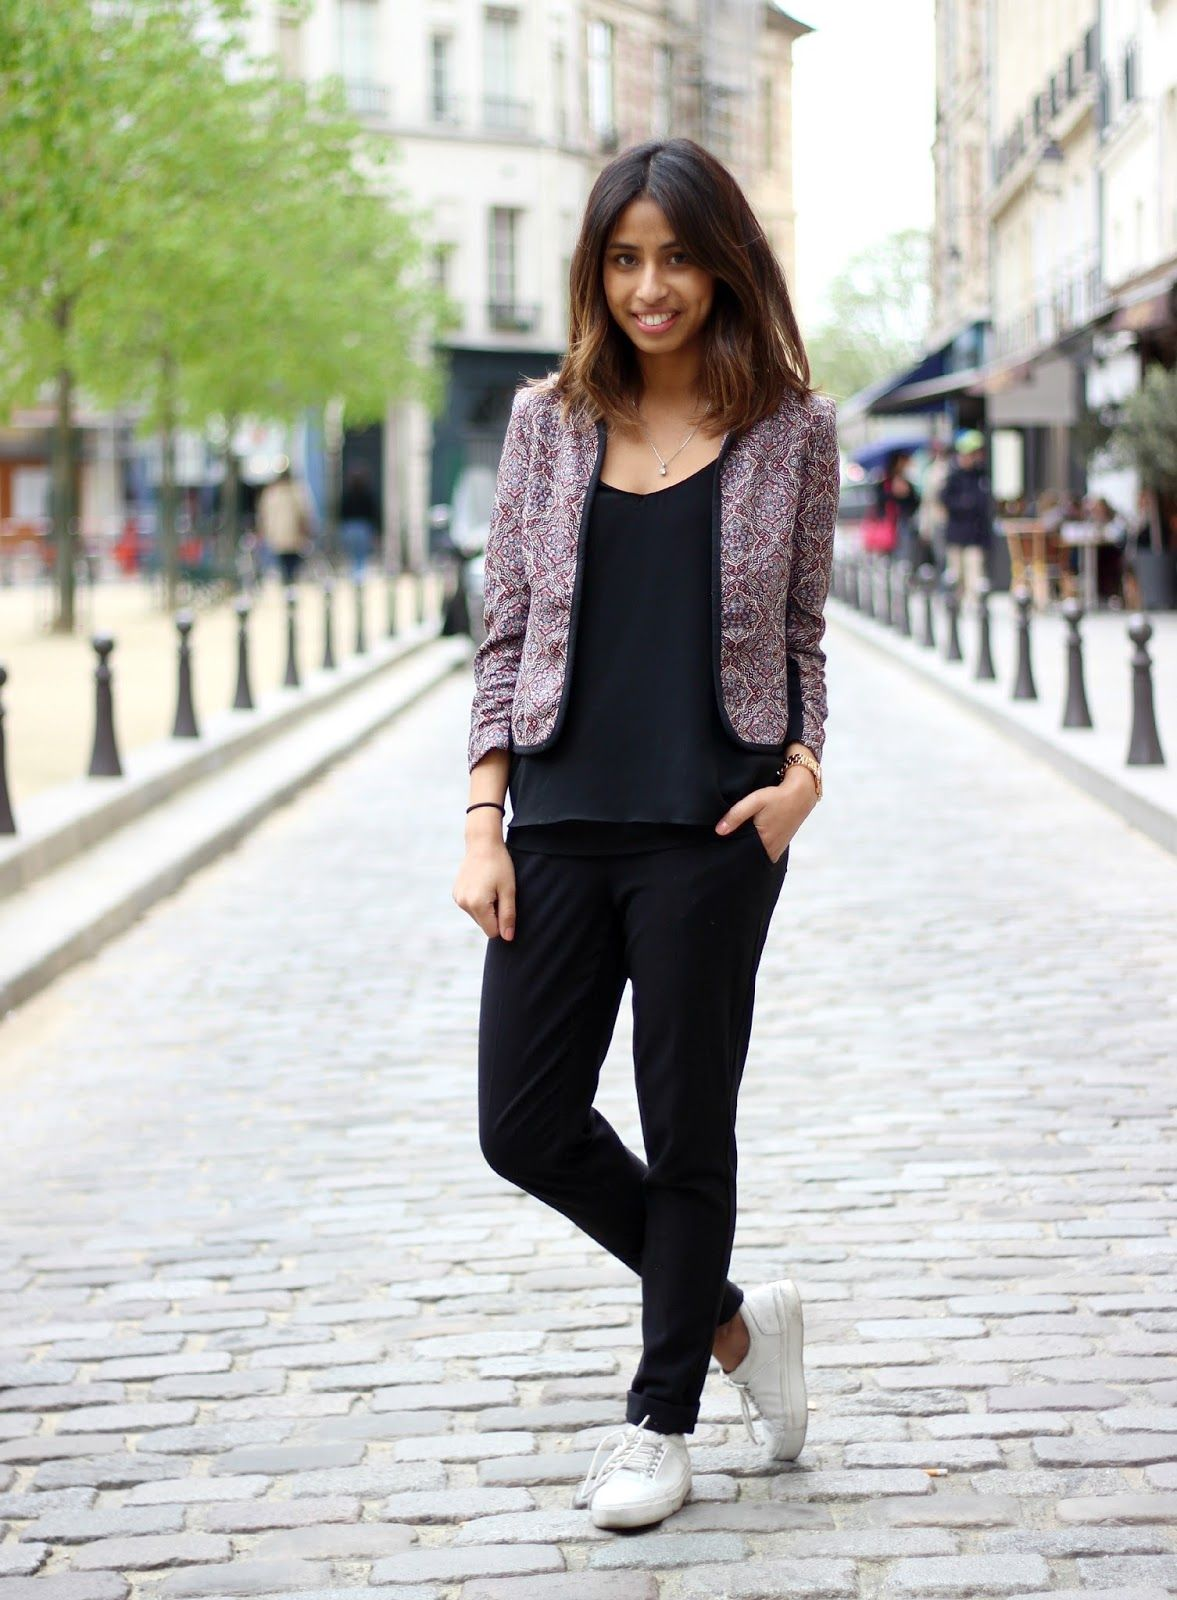 Mademoiselle of the City Sporty My Style